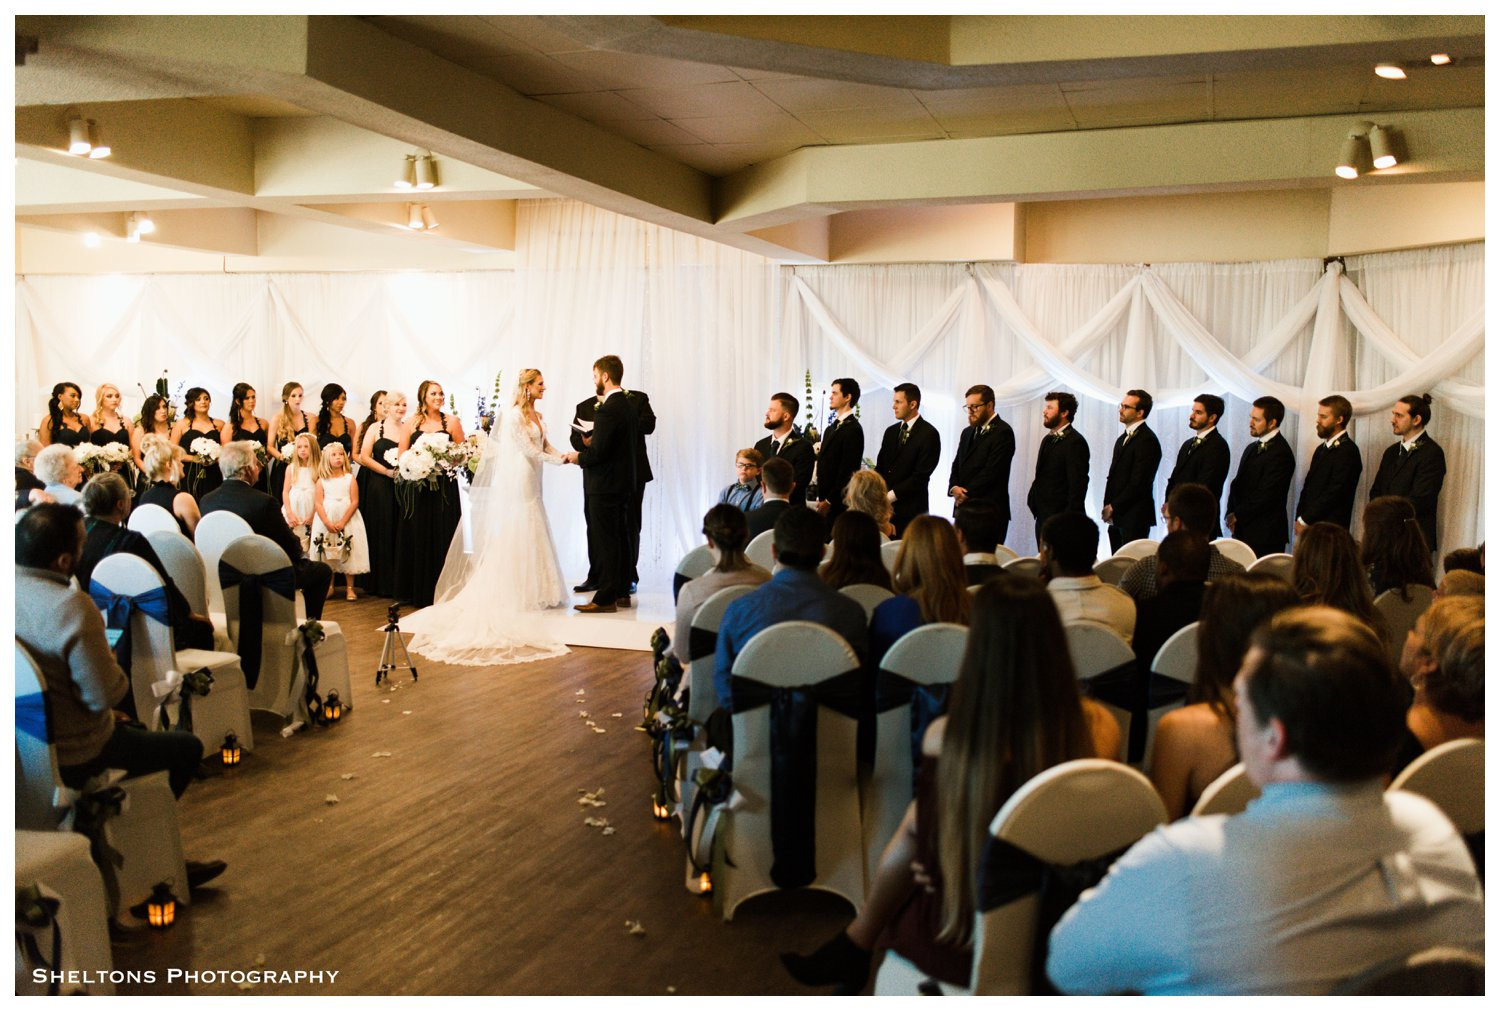 19-arlington-wedding-photography.jpg